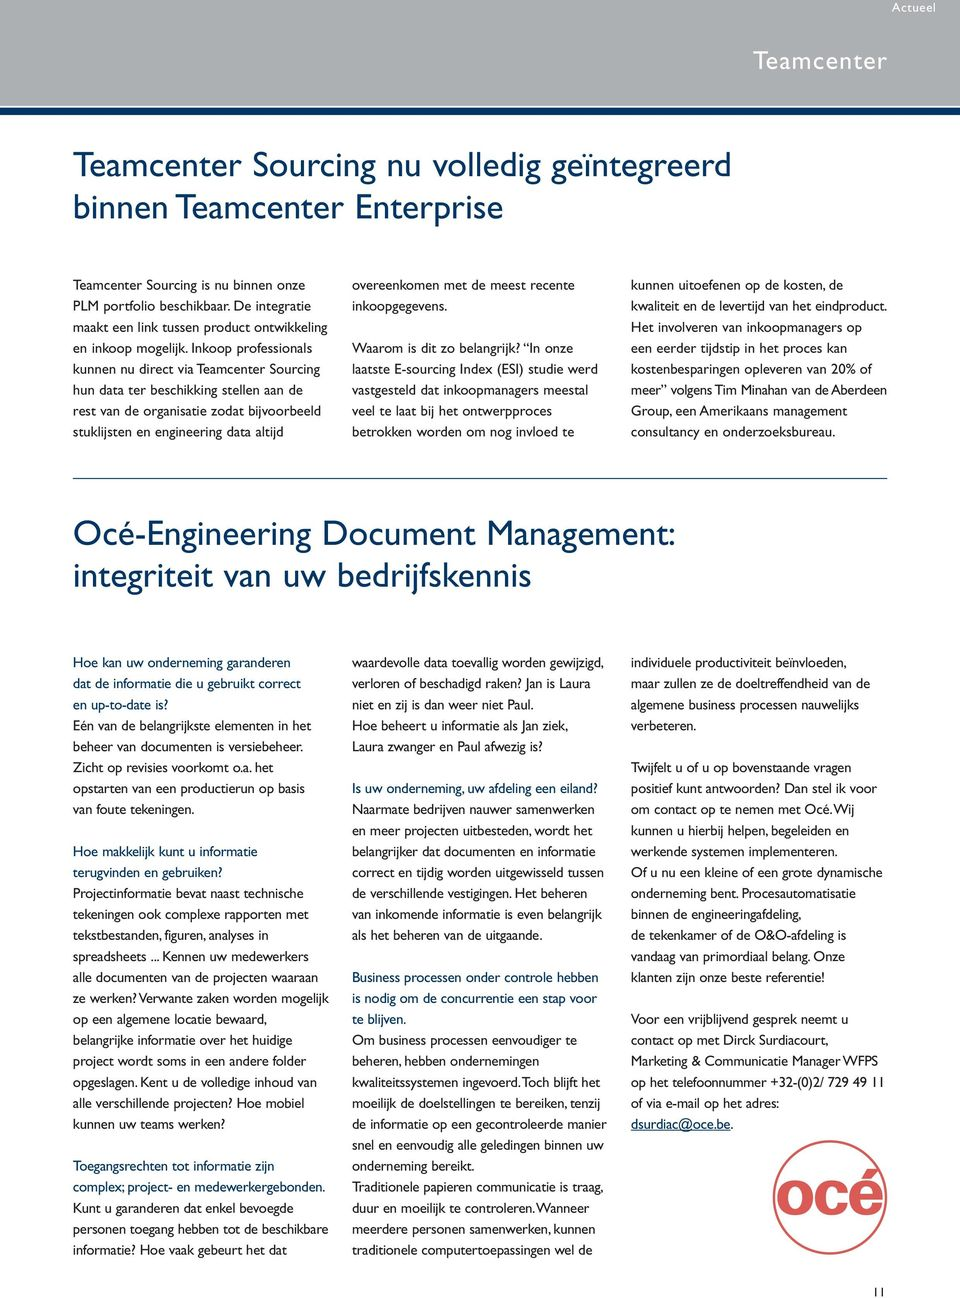 Inkoop professionals kunnen nu direct via Teamcenter Sourcing hun data ter beschikking stellen aan de rest van de organisatie zodat bijvoorbeeld stuklijsten en engineering data altijd overeenkomen